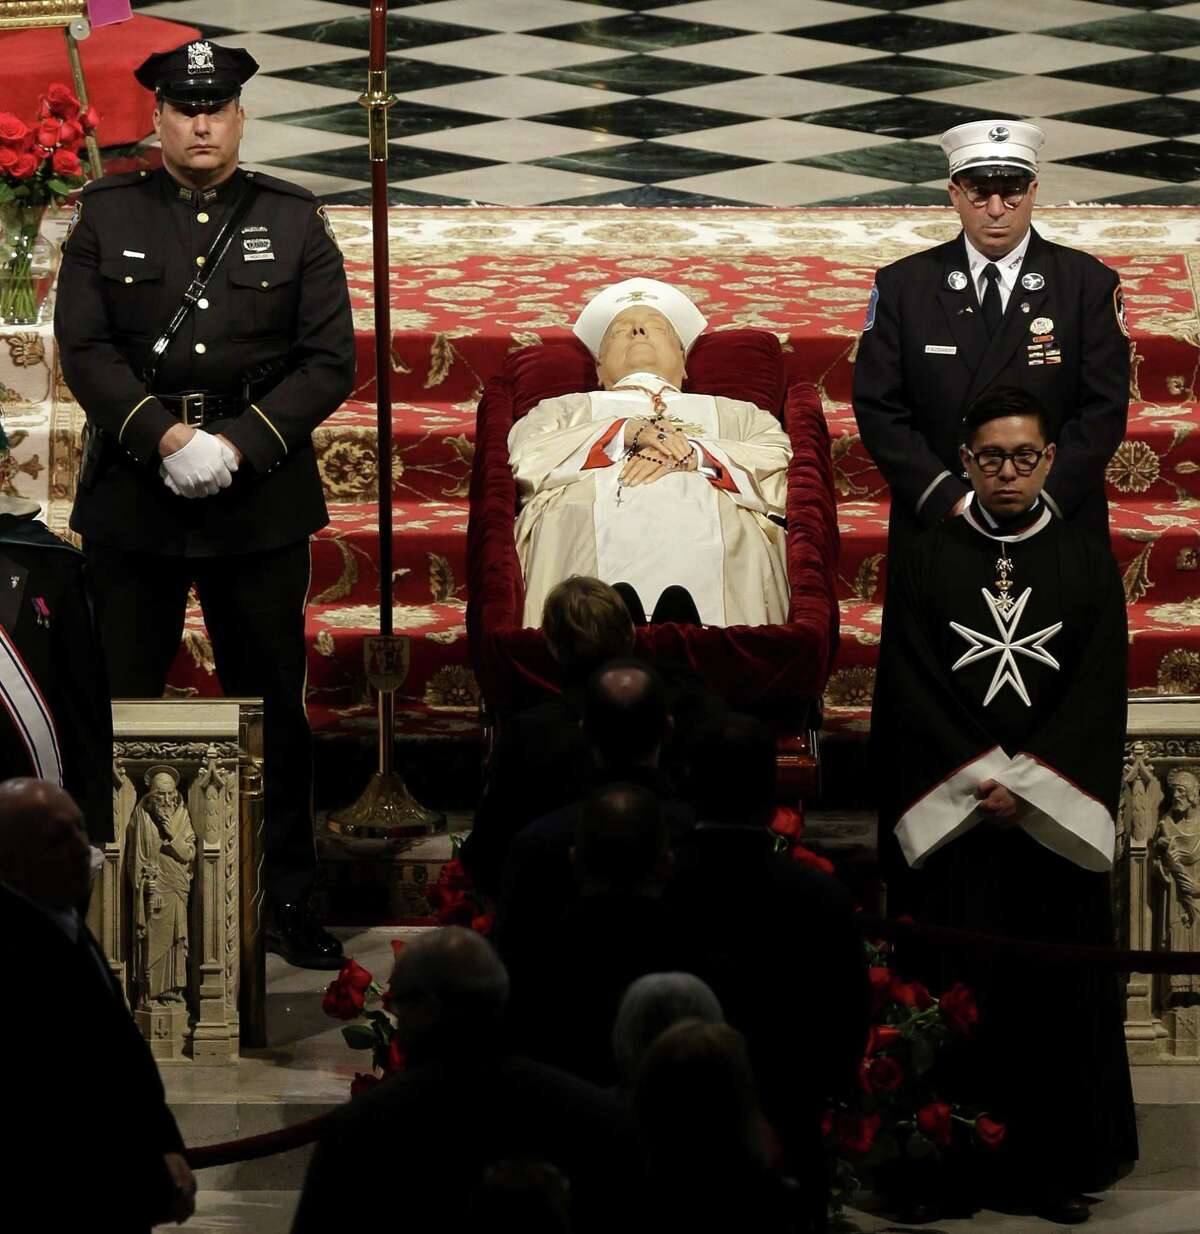 Officals stand around the body of Cardinal Edward Egan at a public viewing in St. Patrick's Cathedral in New York, Monday, March 9, 2015. Egan played a prominent role in New York City after the Sept. 11 terror attacks, and now New Yorkers are paying respects to the former archbishop after his death last week. (AP Photo/Seth Wenig)